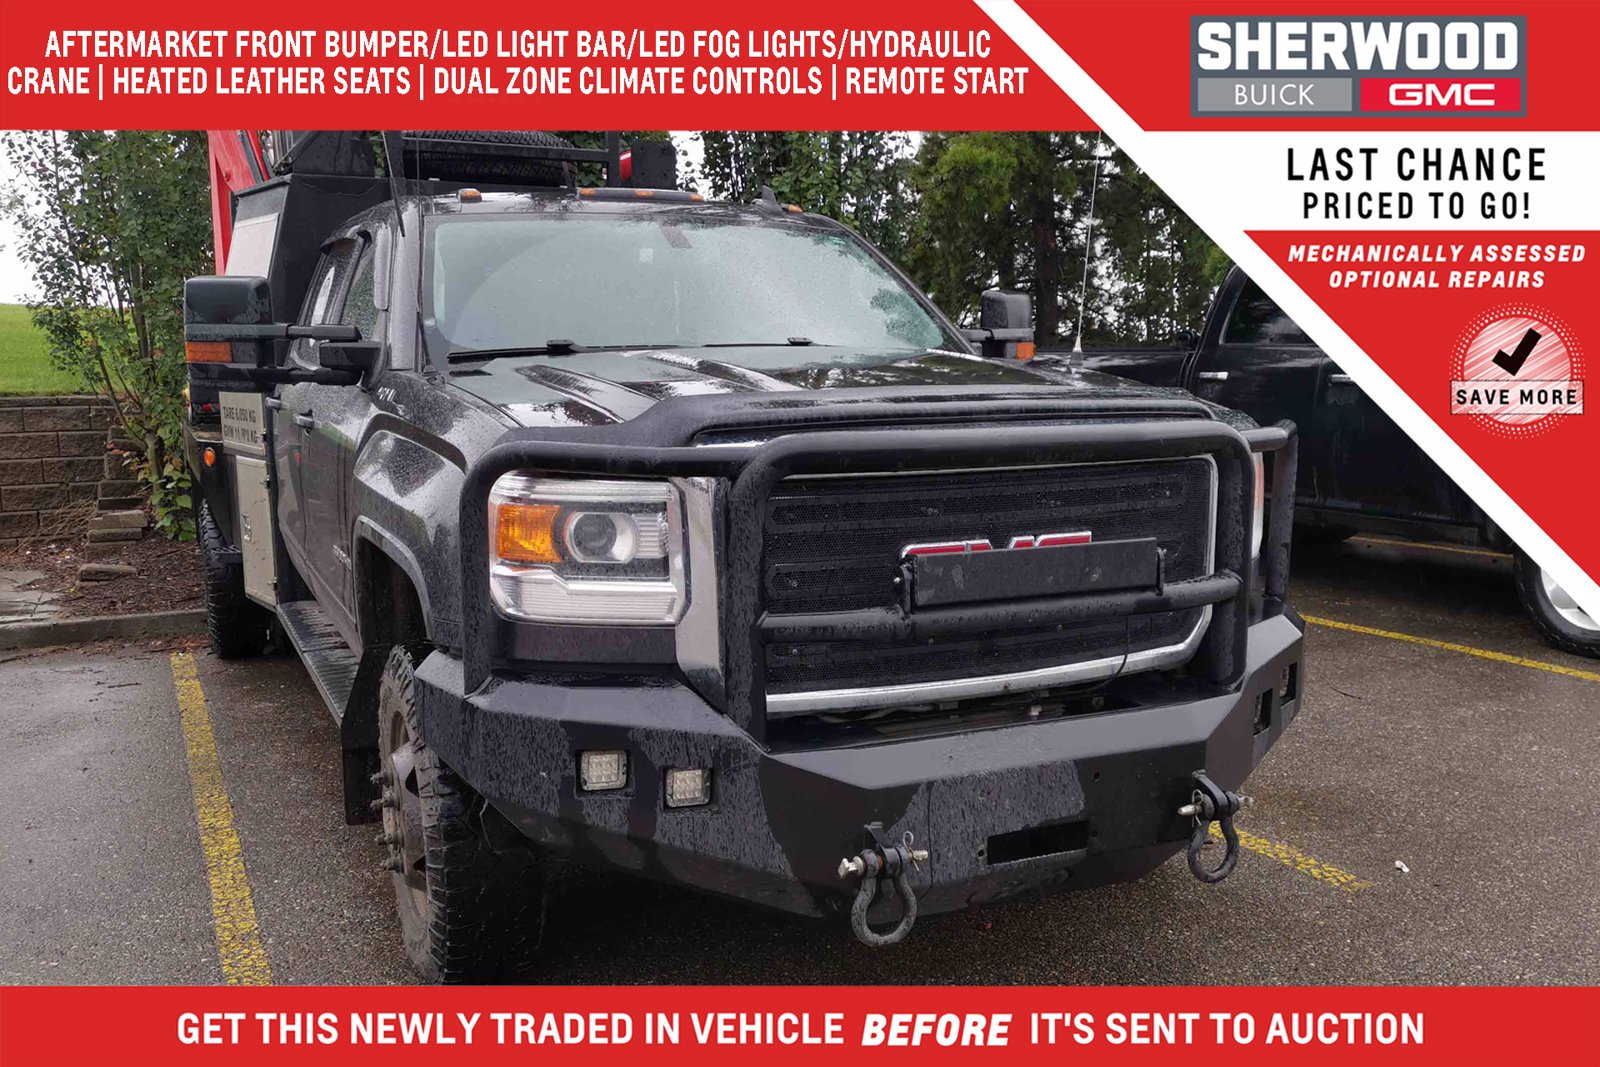 Pre-Owned 2015 GMC Sierra 3500 HD SLE Preferred DRW Service Deck 4WD Crew Cab Pickup